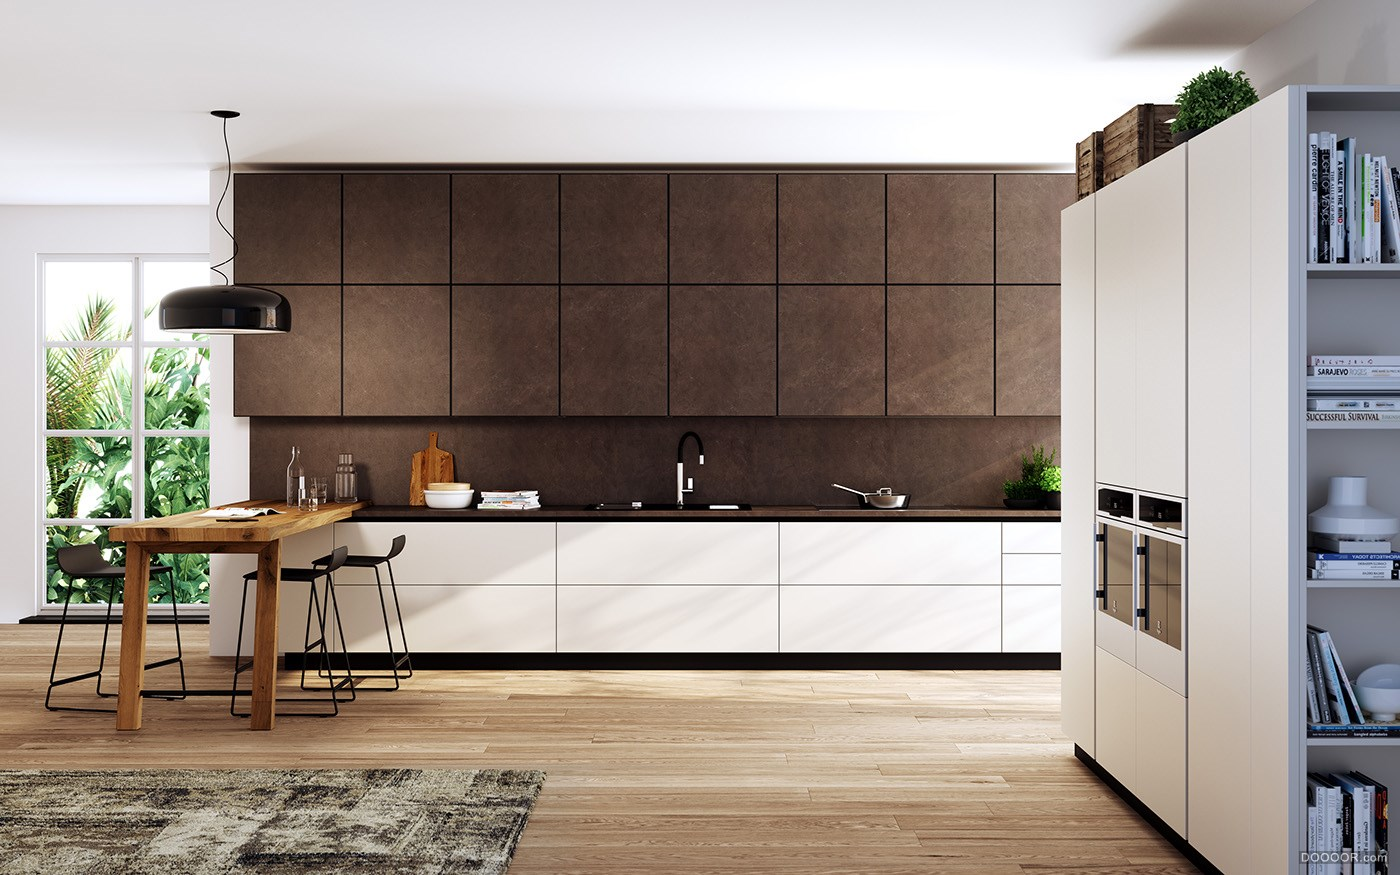 GJ-Kitchens-contemporary-12-20180815235837332